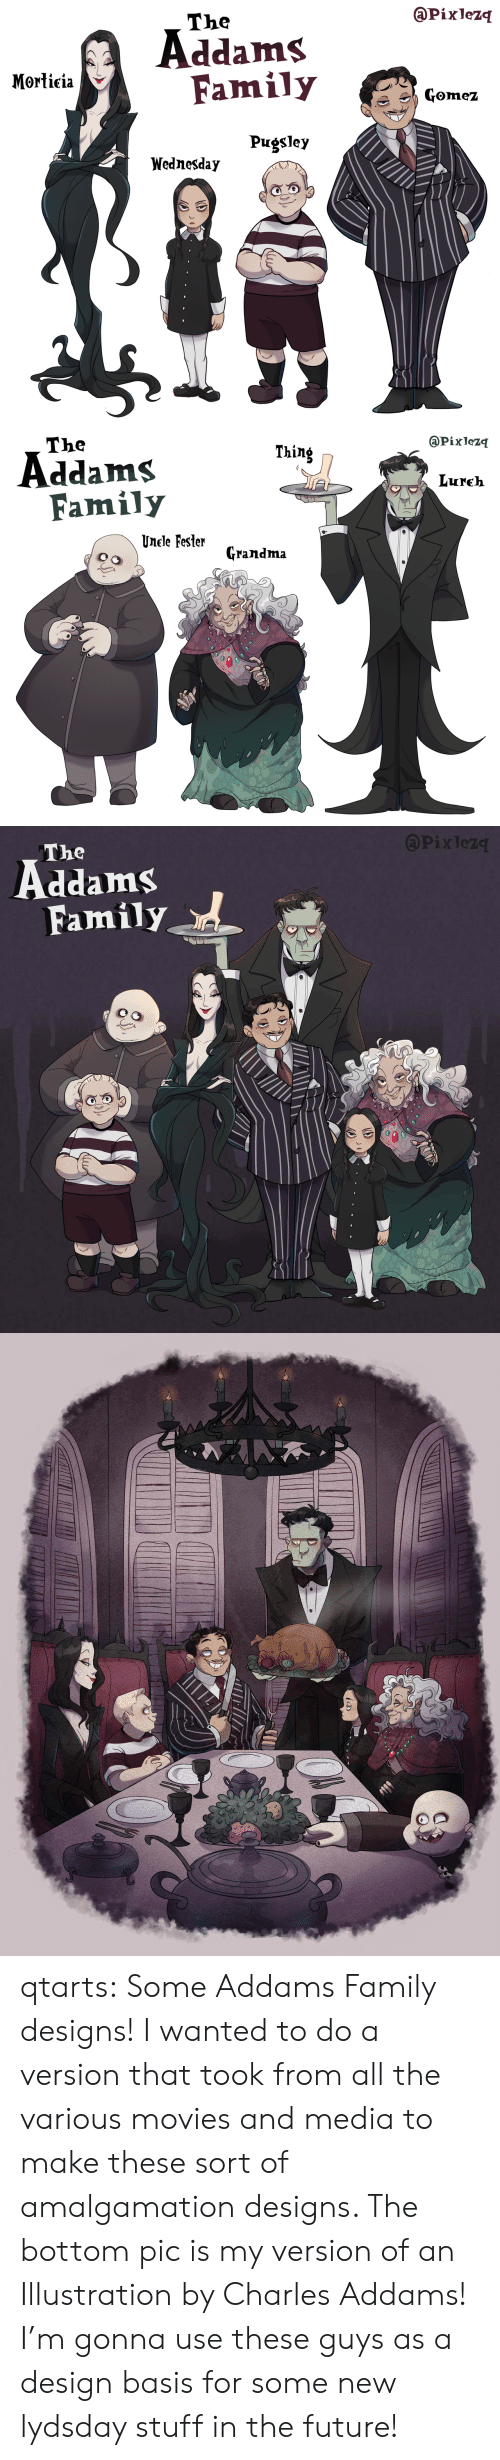 Family, Future, and Grandma: @Pixlezq  The  Addams  Family  Morticia  Gomez  Pugsley  Wednesday   @Pixlezq  The  Thing  Addams  Family  Lureh  Unele Fester  Grandma   APixlez  The  Family qtarts: Some Addams Family designs! I wanted to do a version that took from all the various movies and media to make these sort of amalgamation designs. The bottom pic is my version of an Illustration by Charles Addams! I'm gonna use these guys as a design basis for some new lydsday stuff in the future!